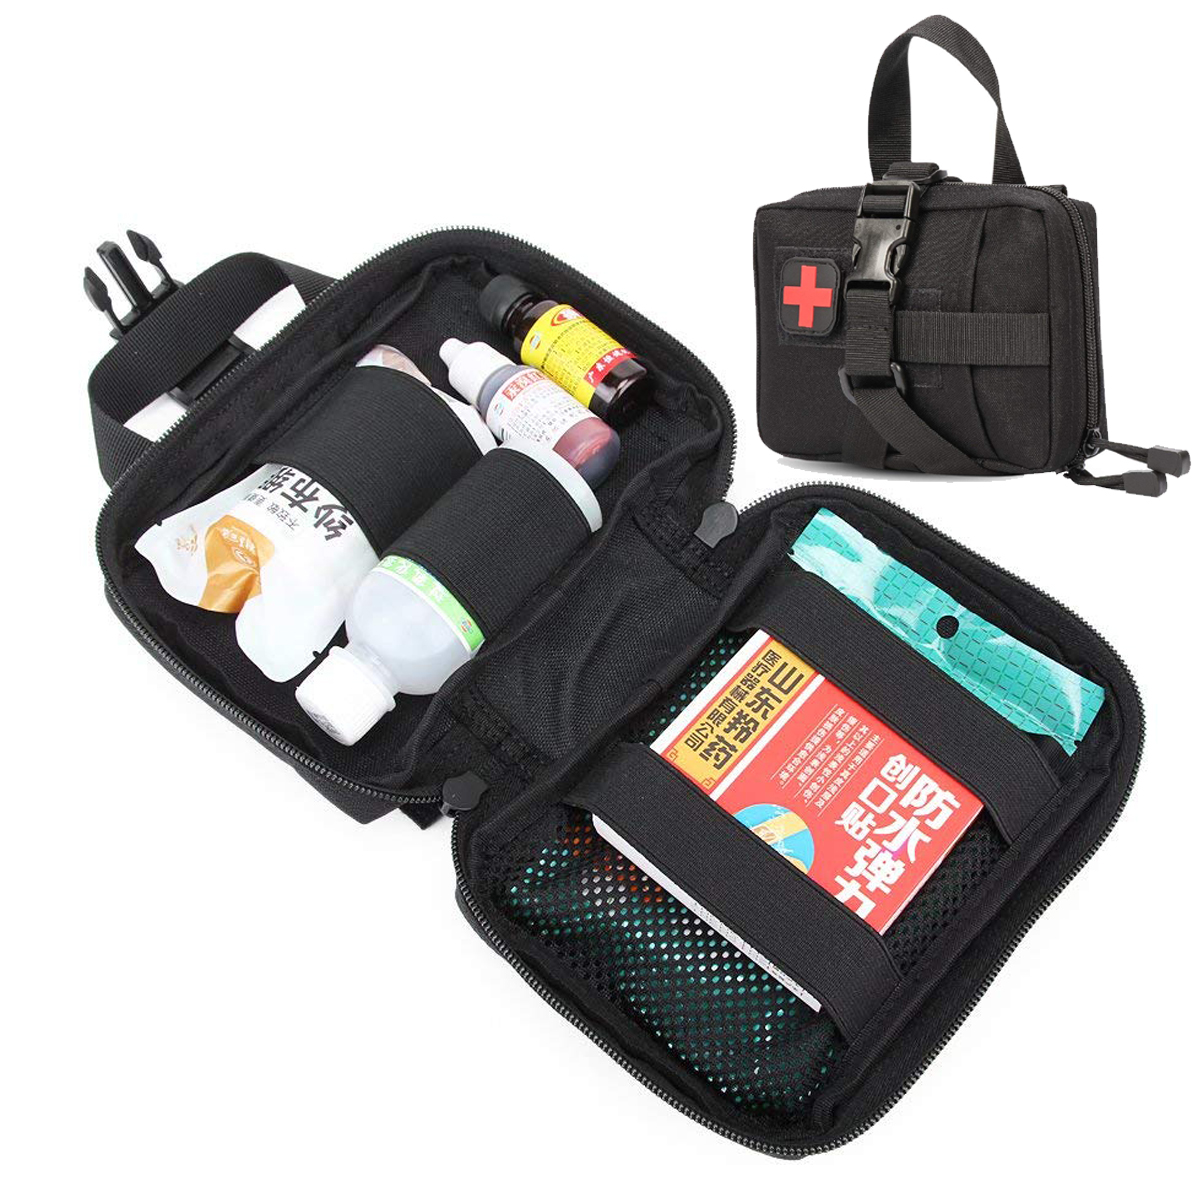 NylonTactical Molle Medical EMT Pouch Outdoor Military Tactics EDC Bag First Aid Pouch Rip-Away Emergency Utility IFAK Pack